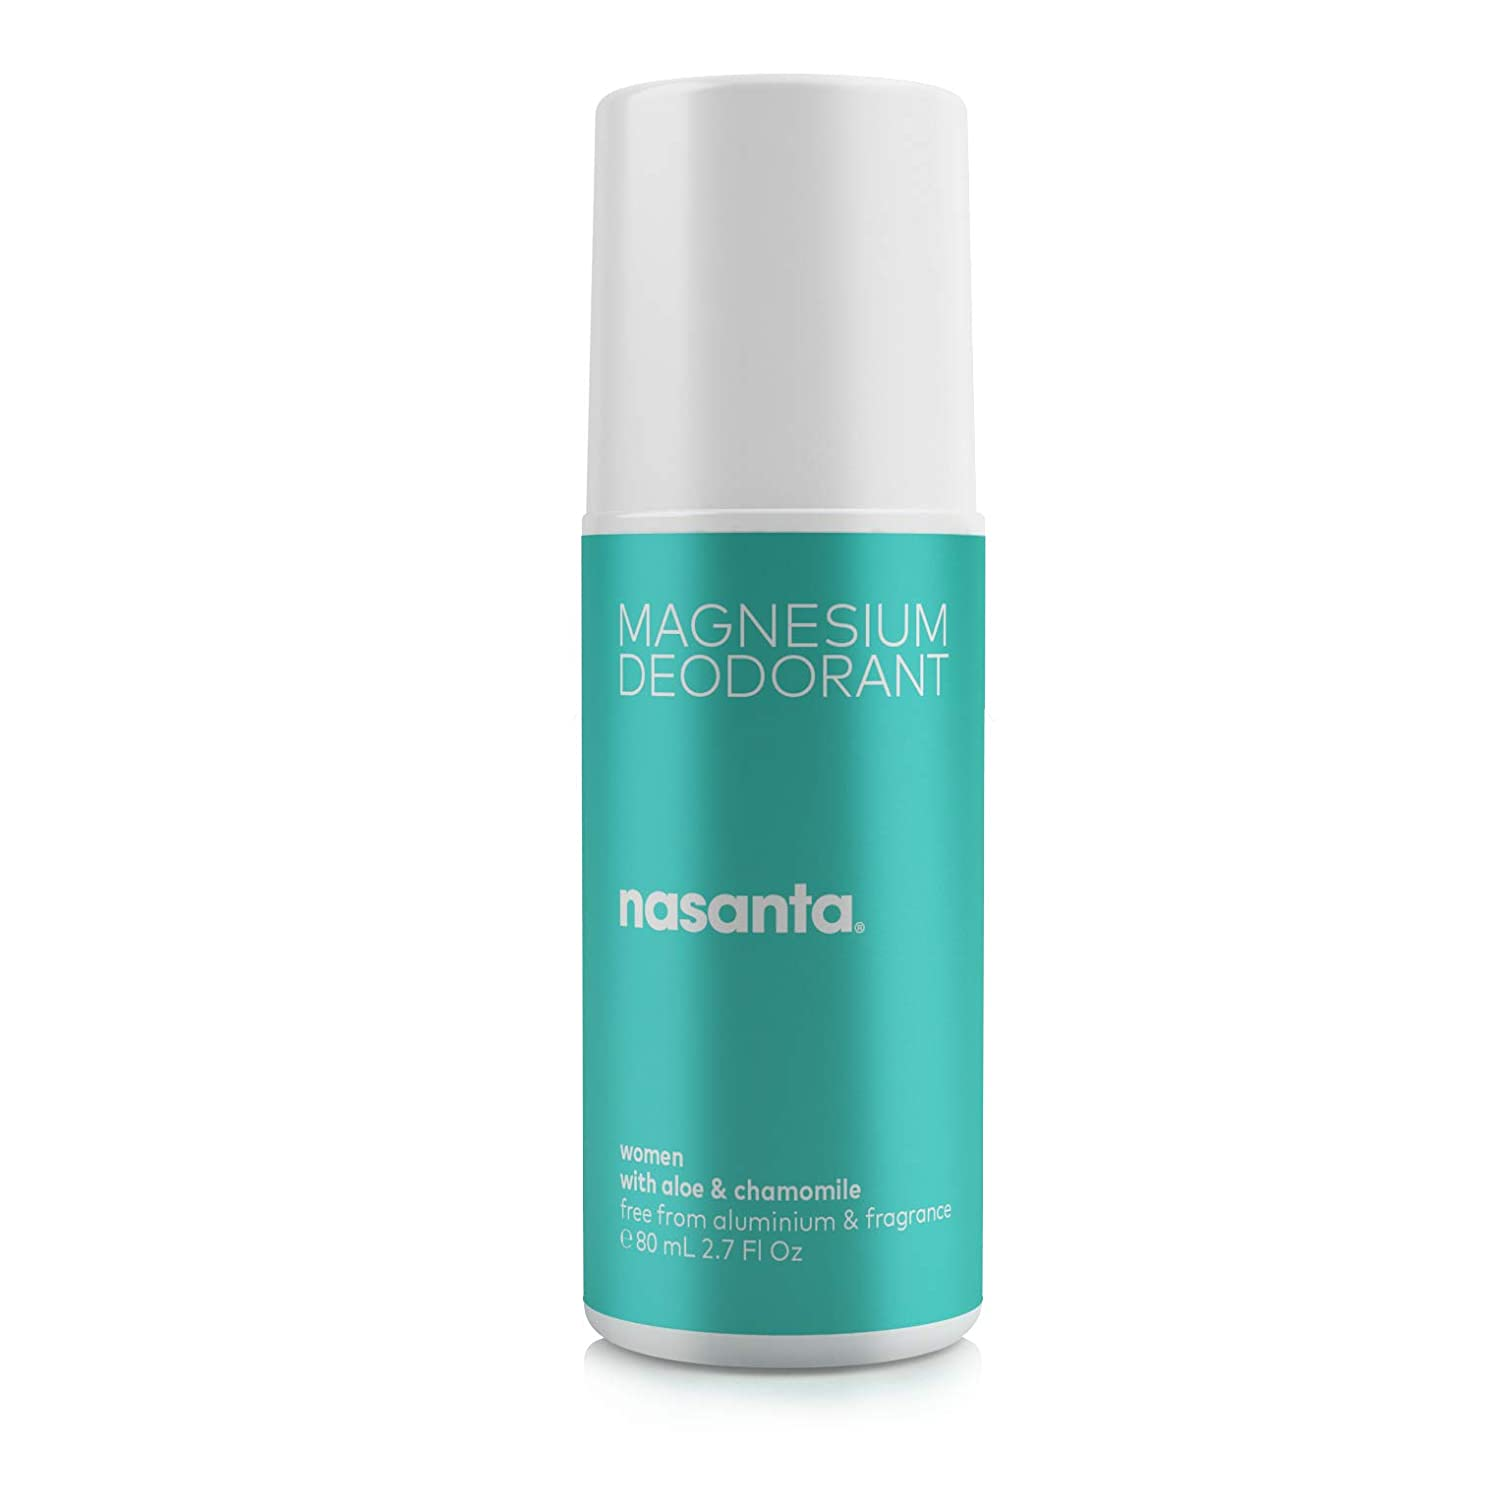 nasanta Magnesium Deodorant for Women with Aloe & Chamomile - Australian Made Natural Deodorant, 100% Free of ALL Forms of Aluminum, 100% Unscented, 80 mL 2.7 Fl Oz Roll On : Beauty